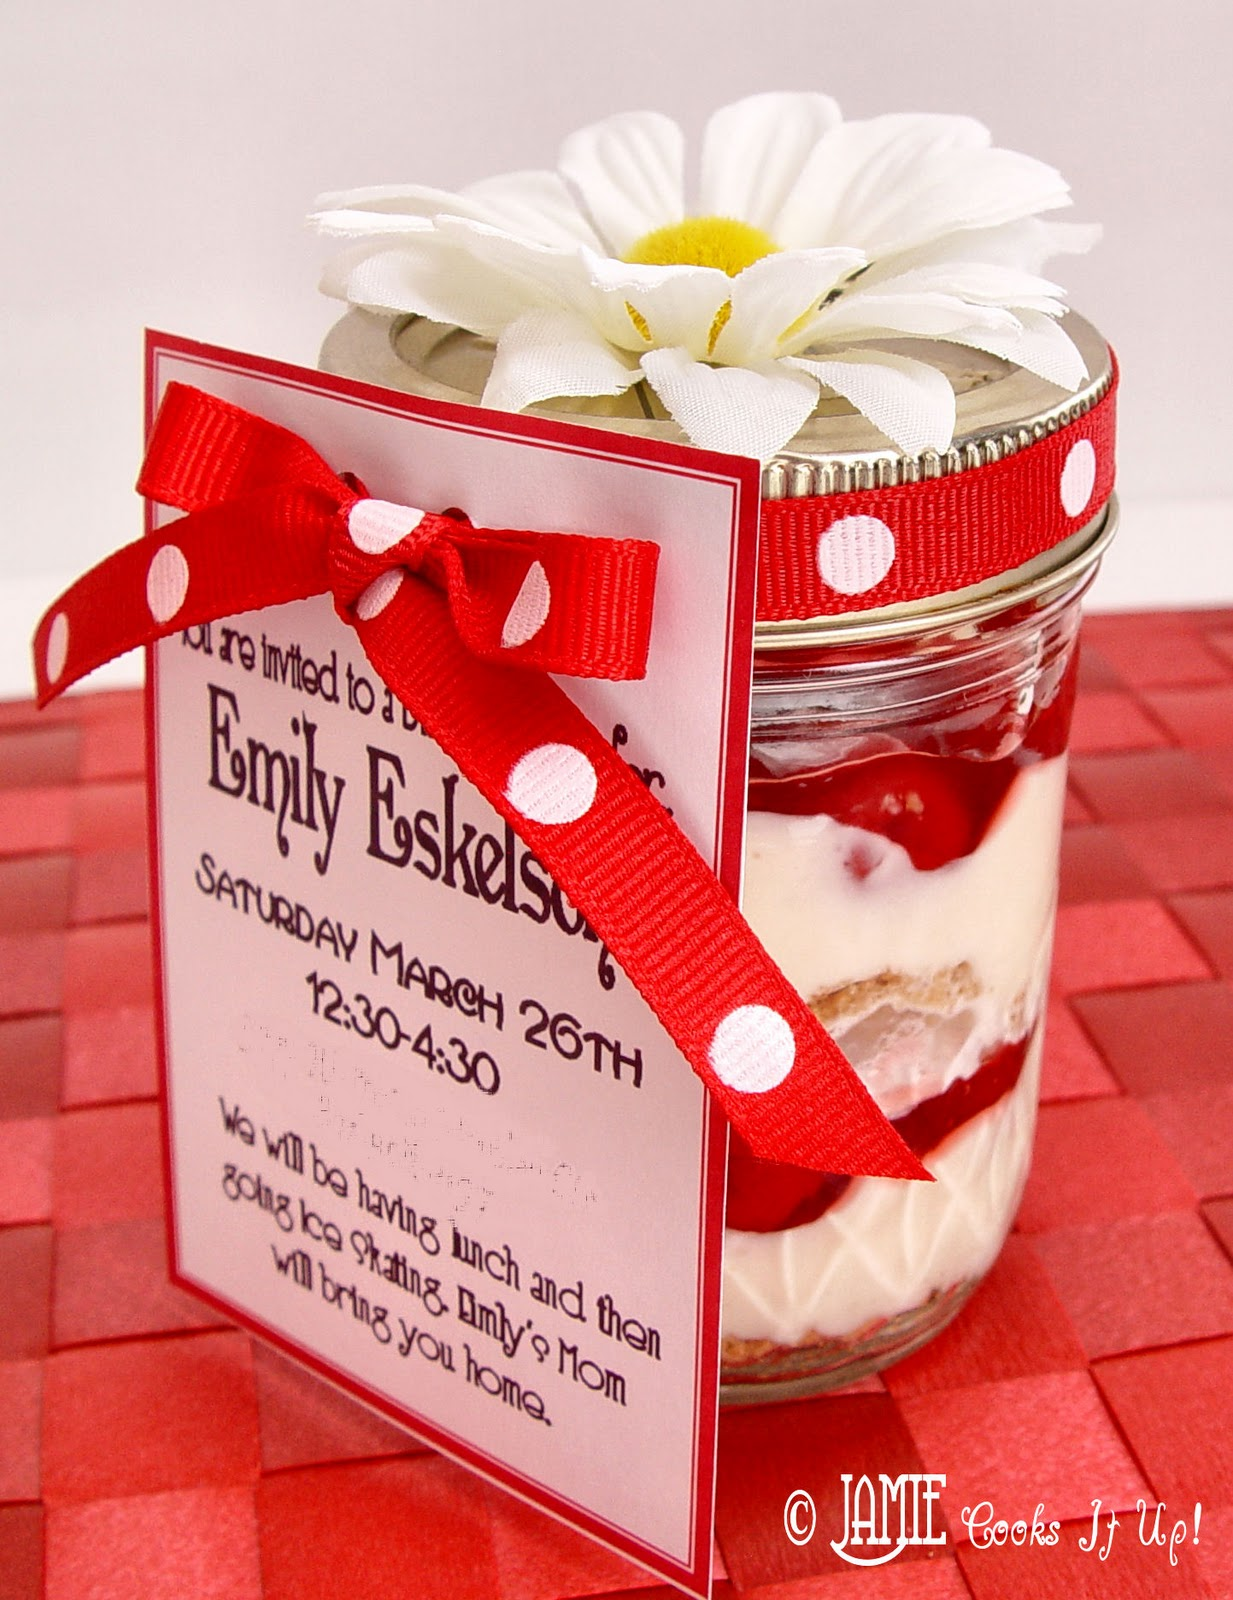 Cherry Cheesecake in a Jar! | Jamie Cooks It Up - Family Favorite ...